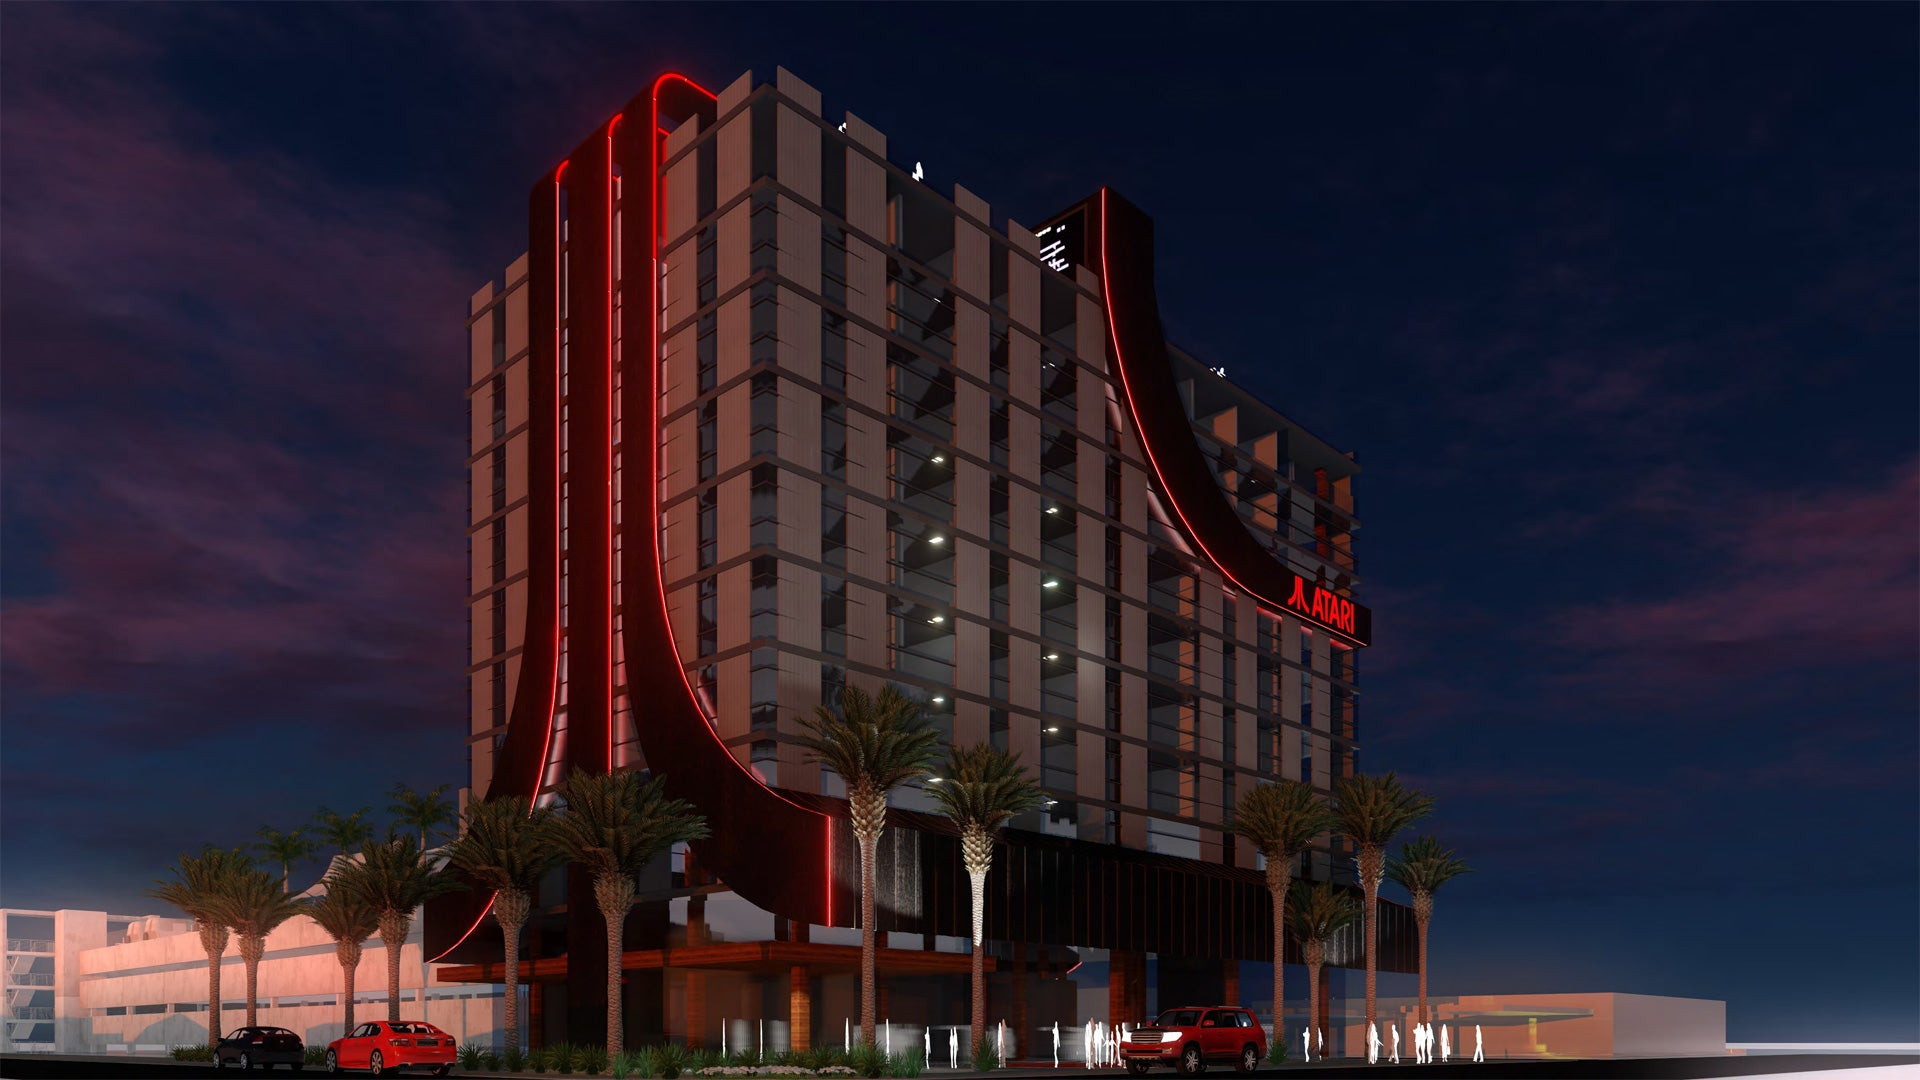 Atari Hotel chain sounds like a serious gamer's dream vacation digs